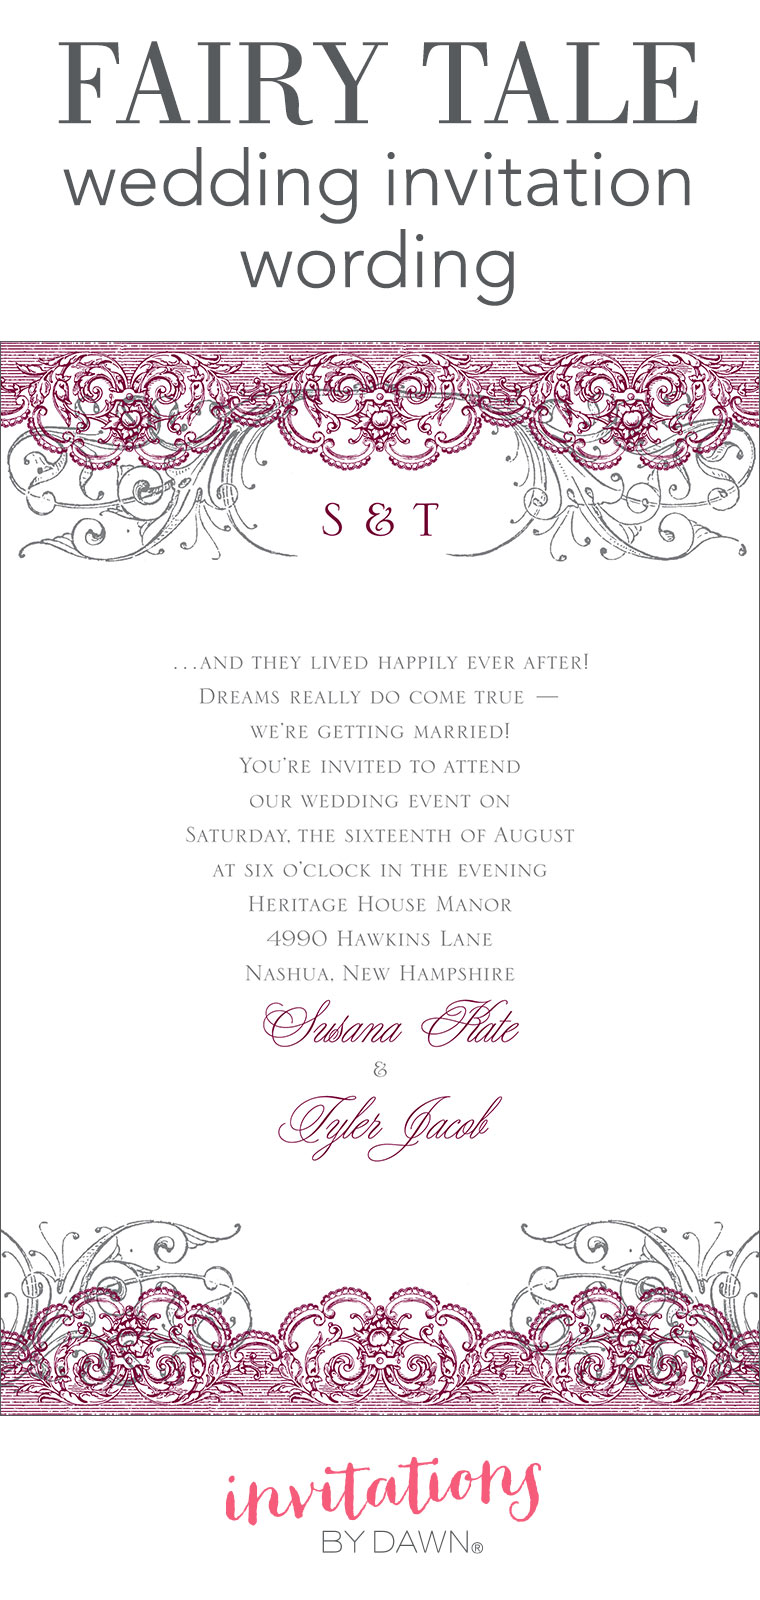 Fairy tale wedding invitation wording invitations by dawn fairy tale wedding invitation wording stopboris Gallery